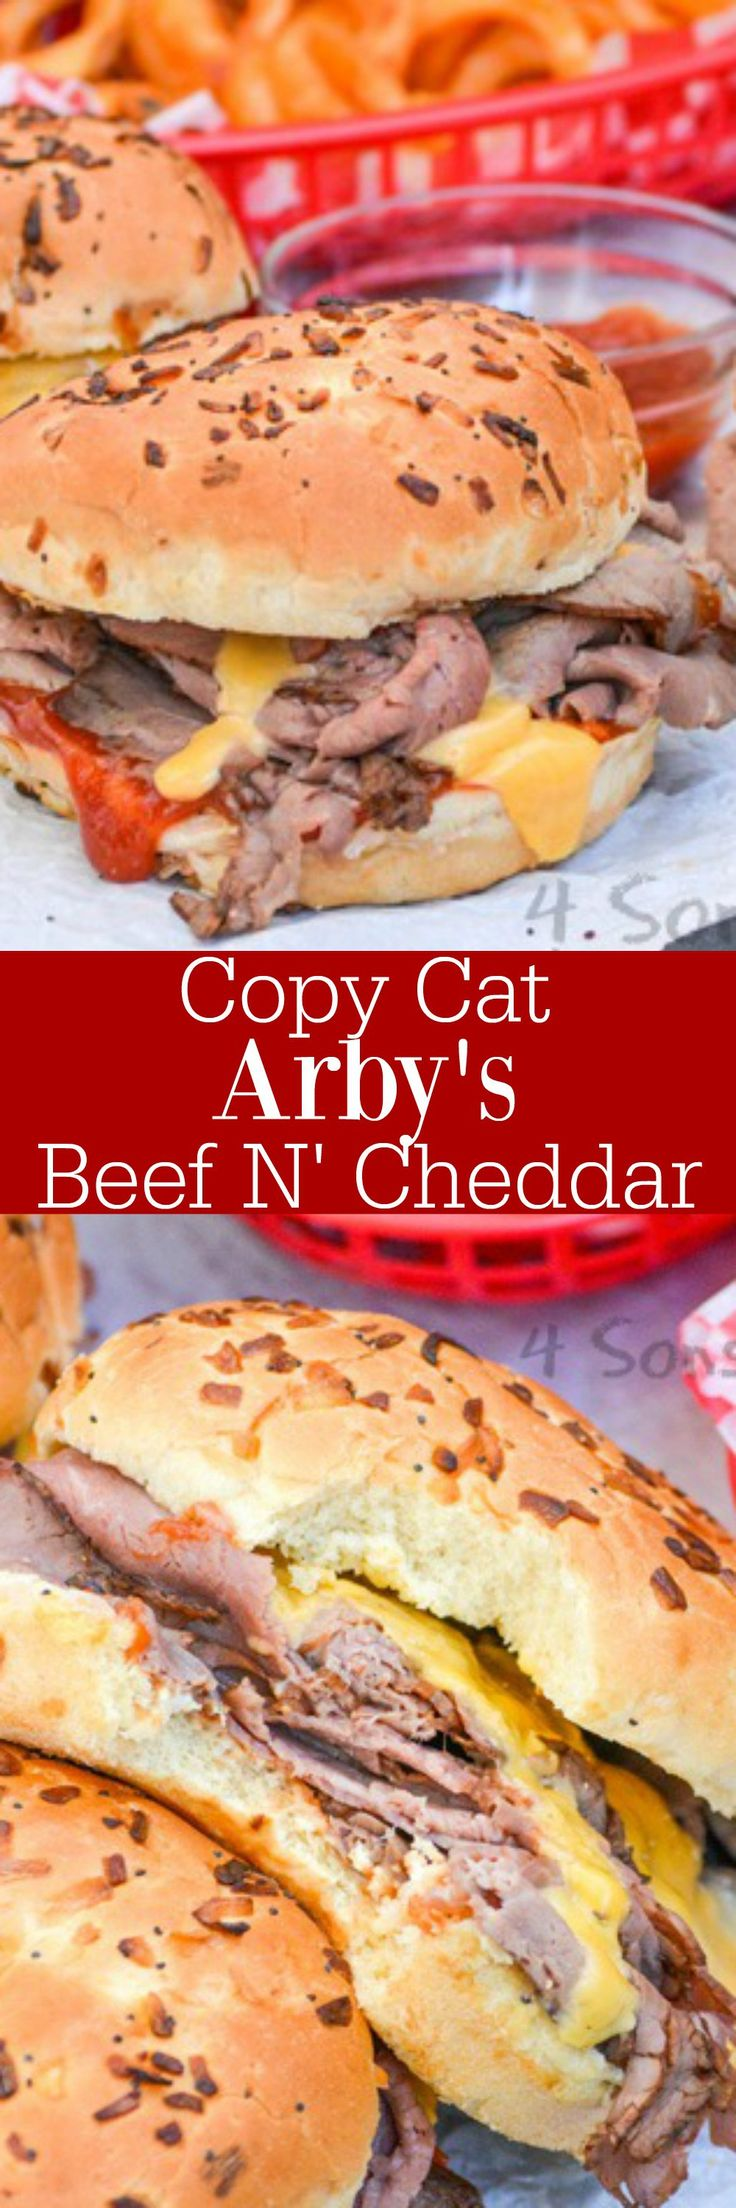 Get your favorite fast food sandwich fix without ever leaving the house. A Copy Cat Arby's Beef N' Cheddar tastes just like the original, but it's ready in a flash with ingredients already in your kitchen. This sandwich is a true copy cat of it's restaurant counter-part, featuring fluffy onion buns piled high with roast beef, slathered in a signature sauce and dripping with golden cheese.